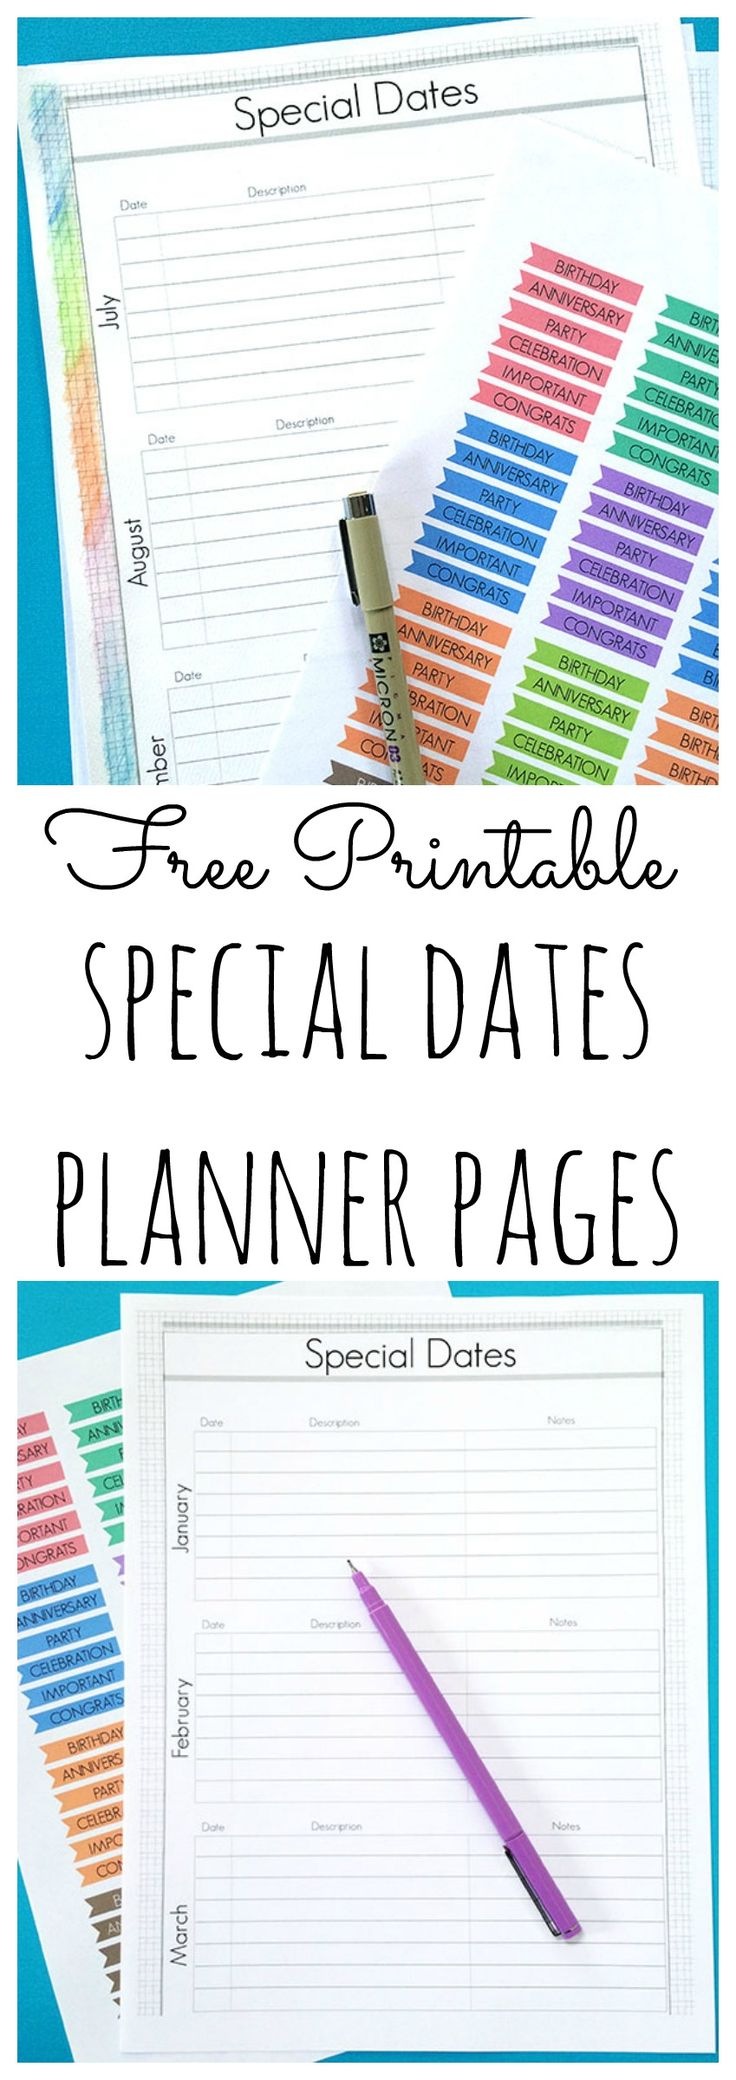 Print these special dates planner pages for free and never miss another birthday or anniversary! Perfect printable to get you organized this year!